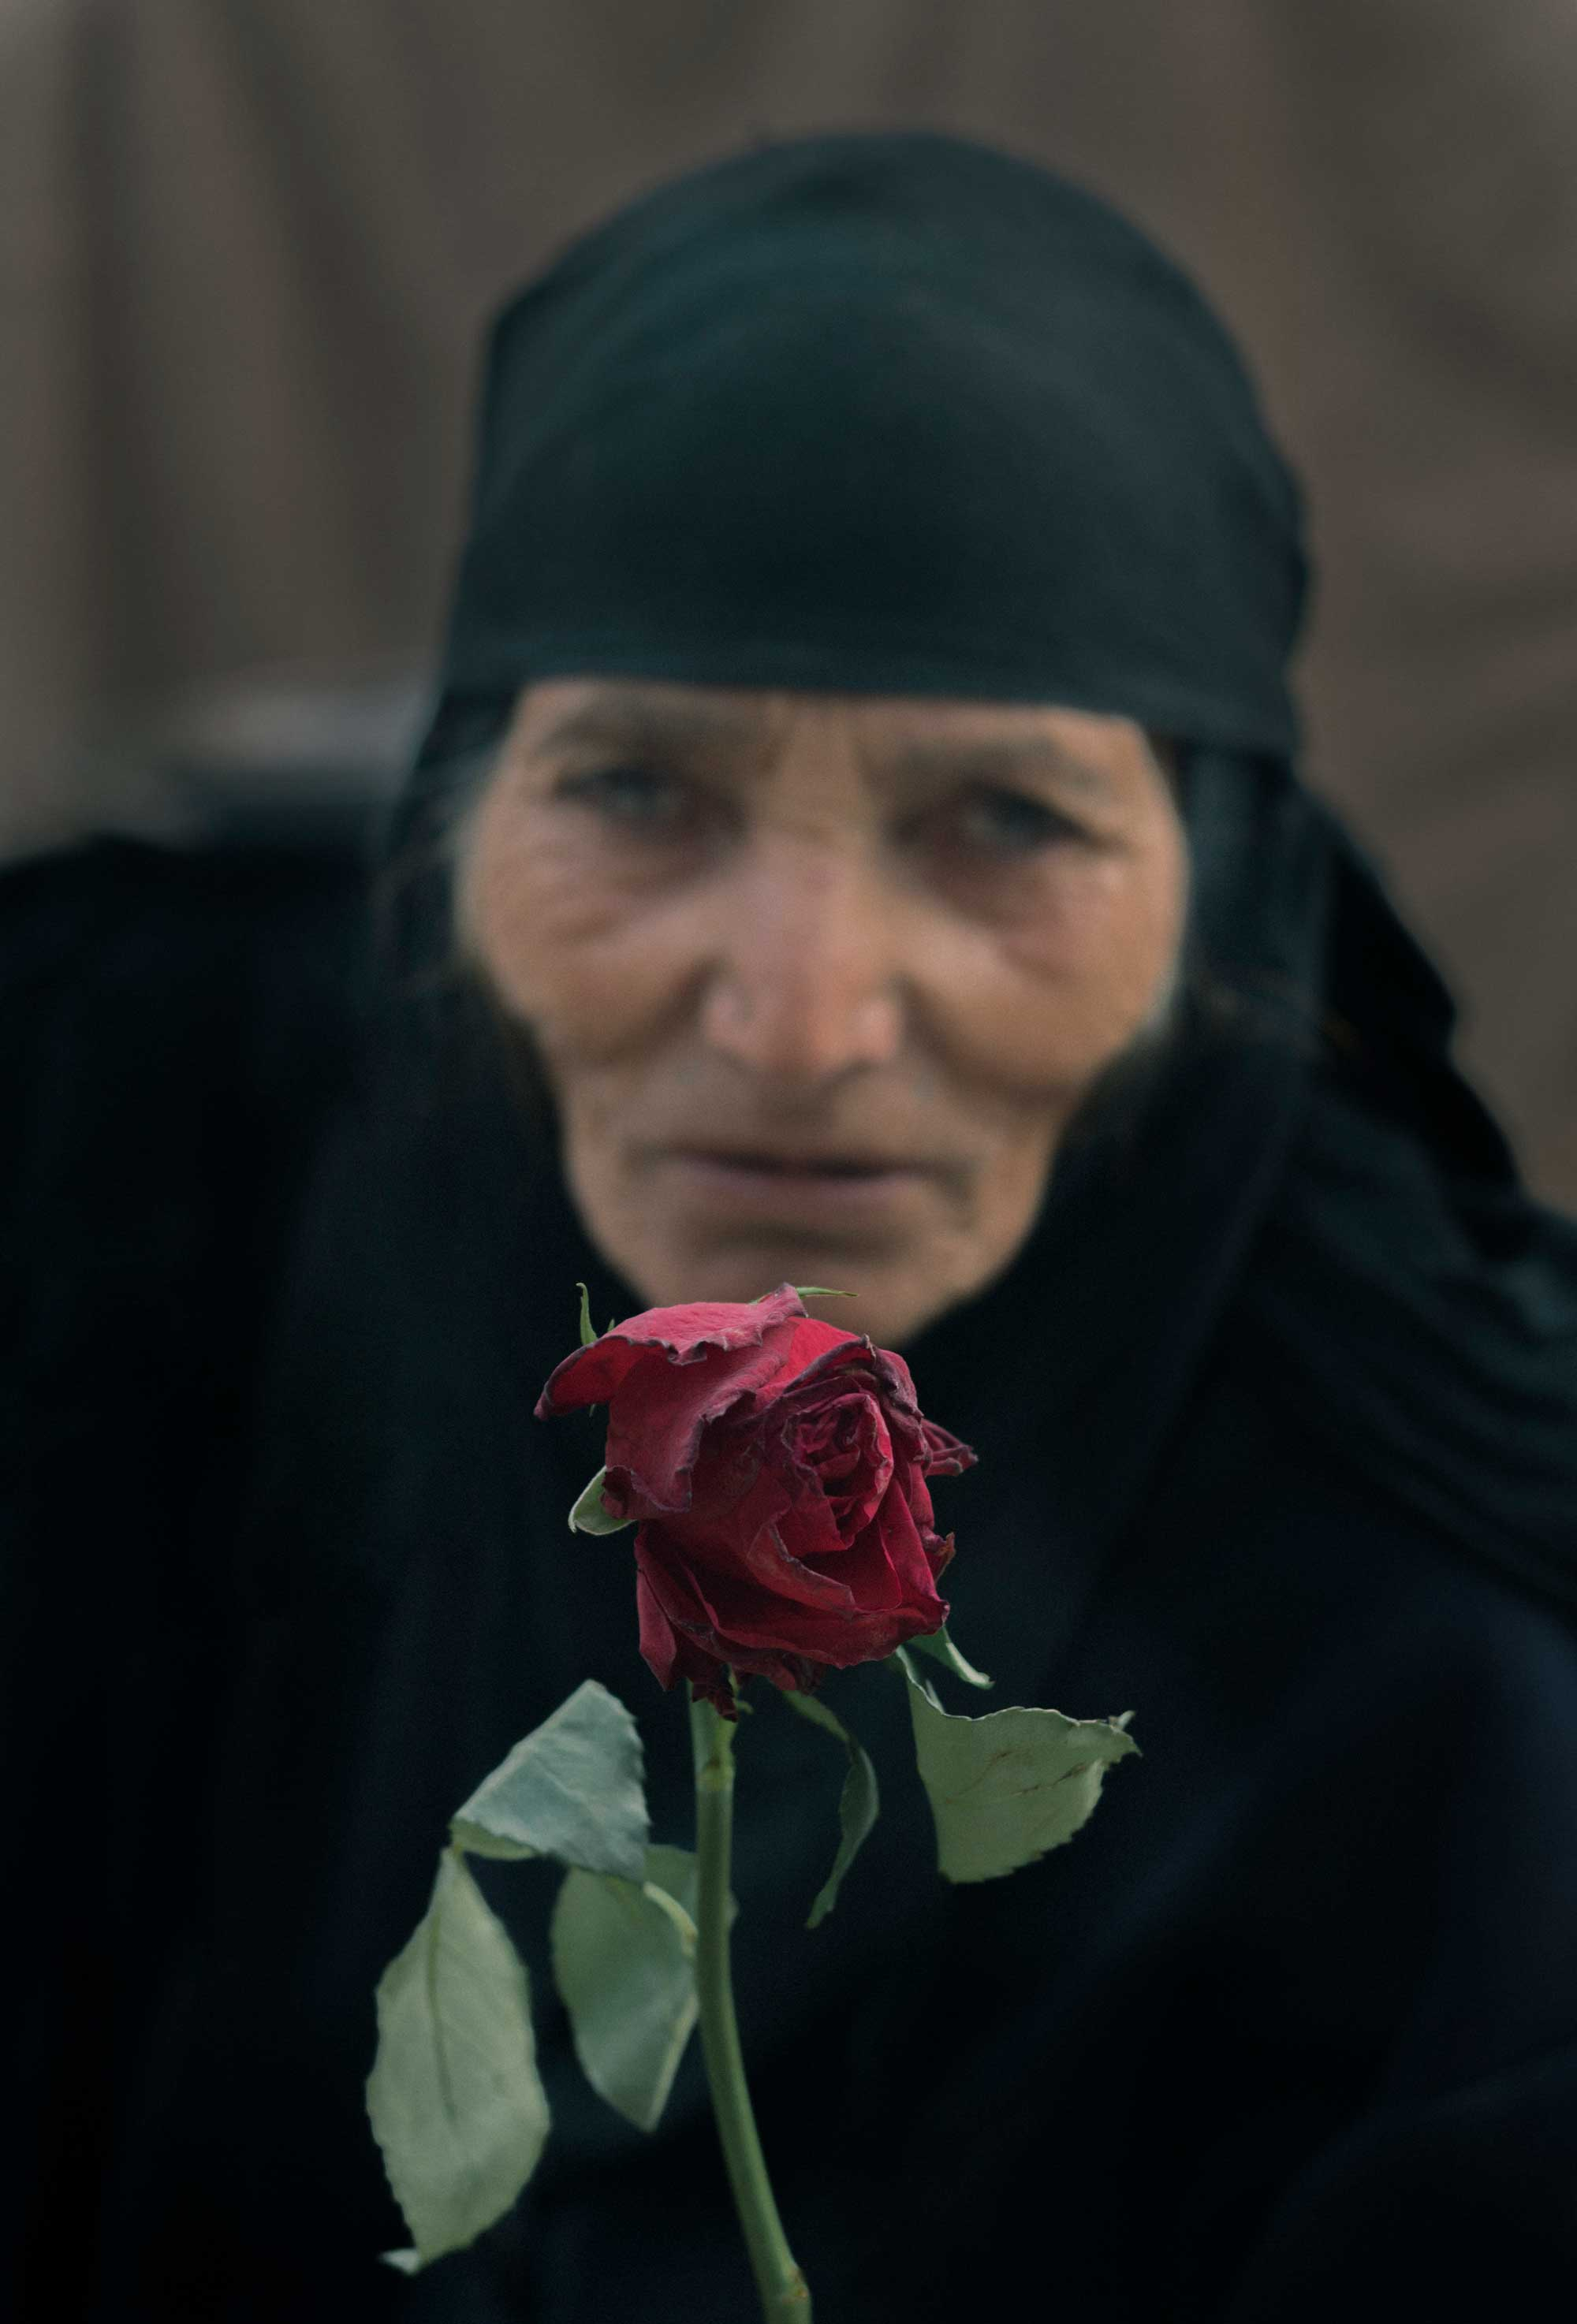 An older Iraqi woman stares into the camera with a red rose in her hand.